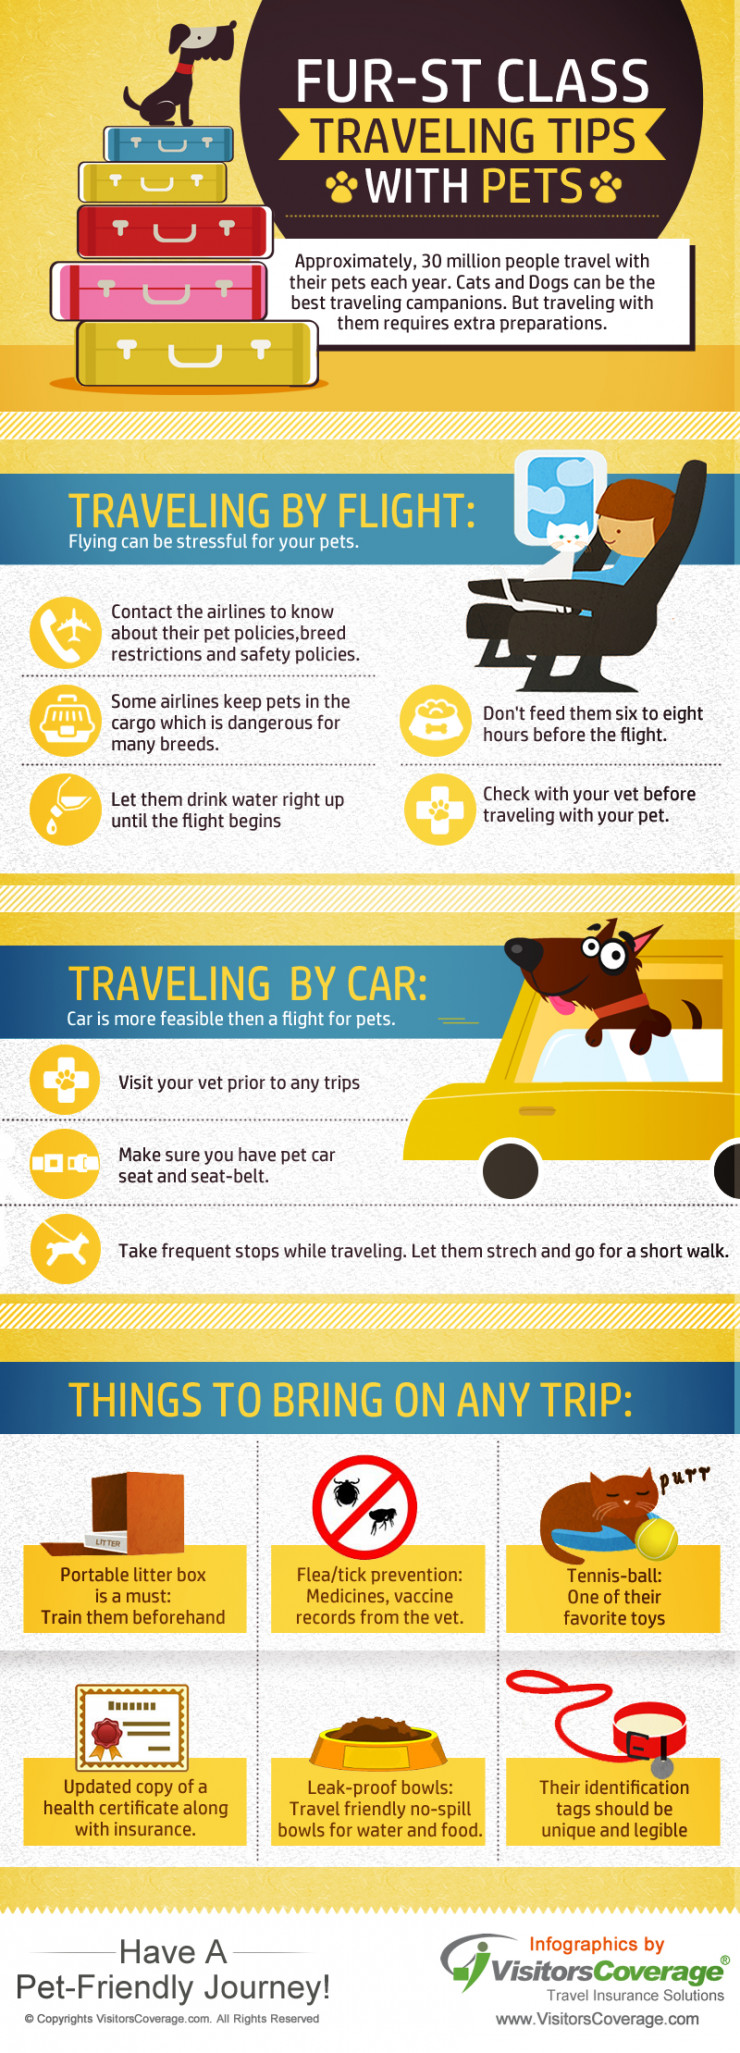 Traveling Tips for Travelers with Pets